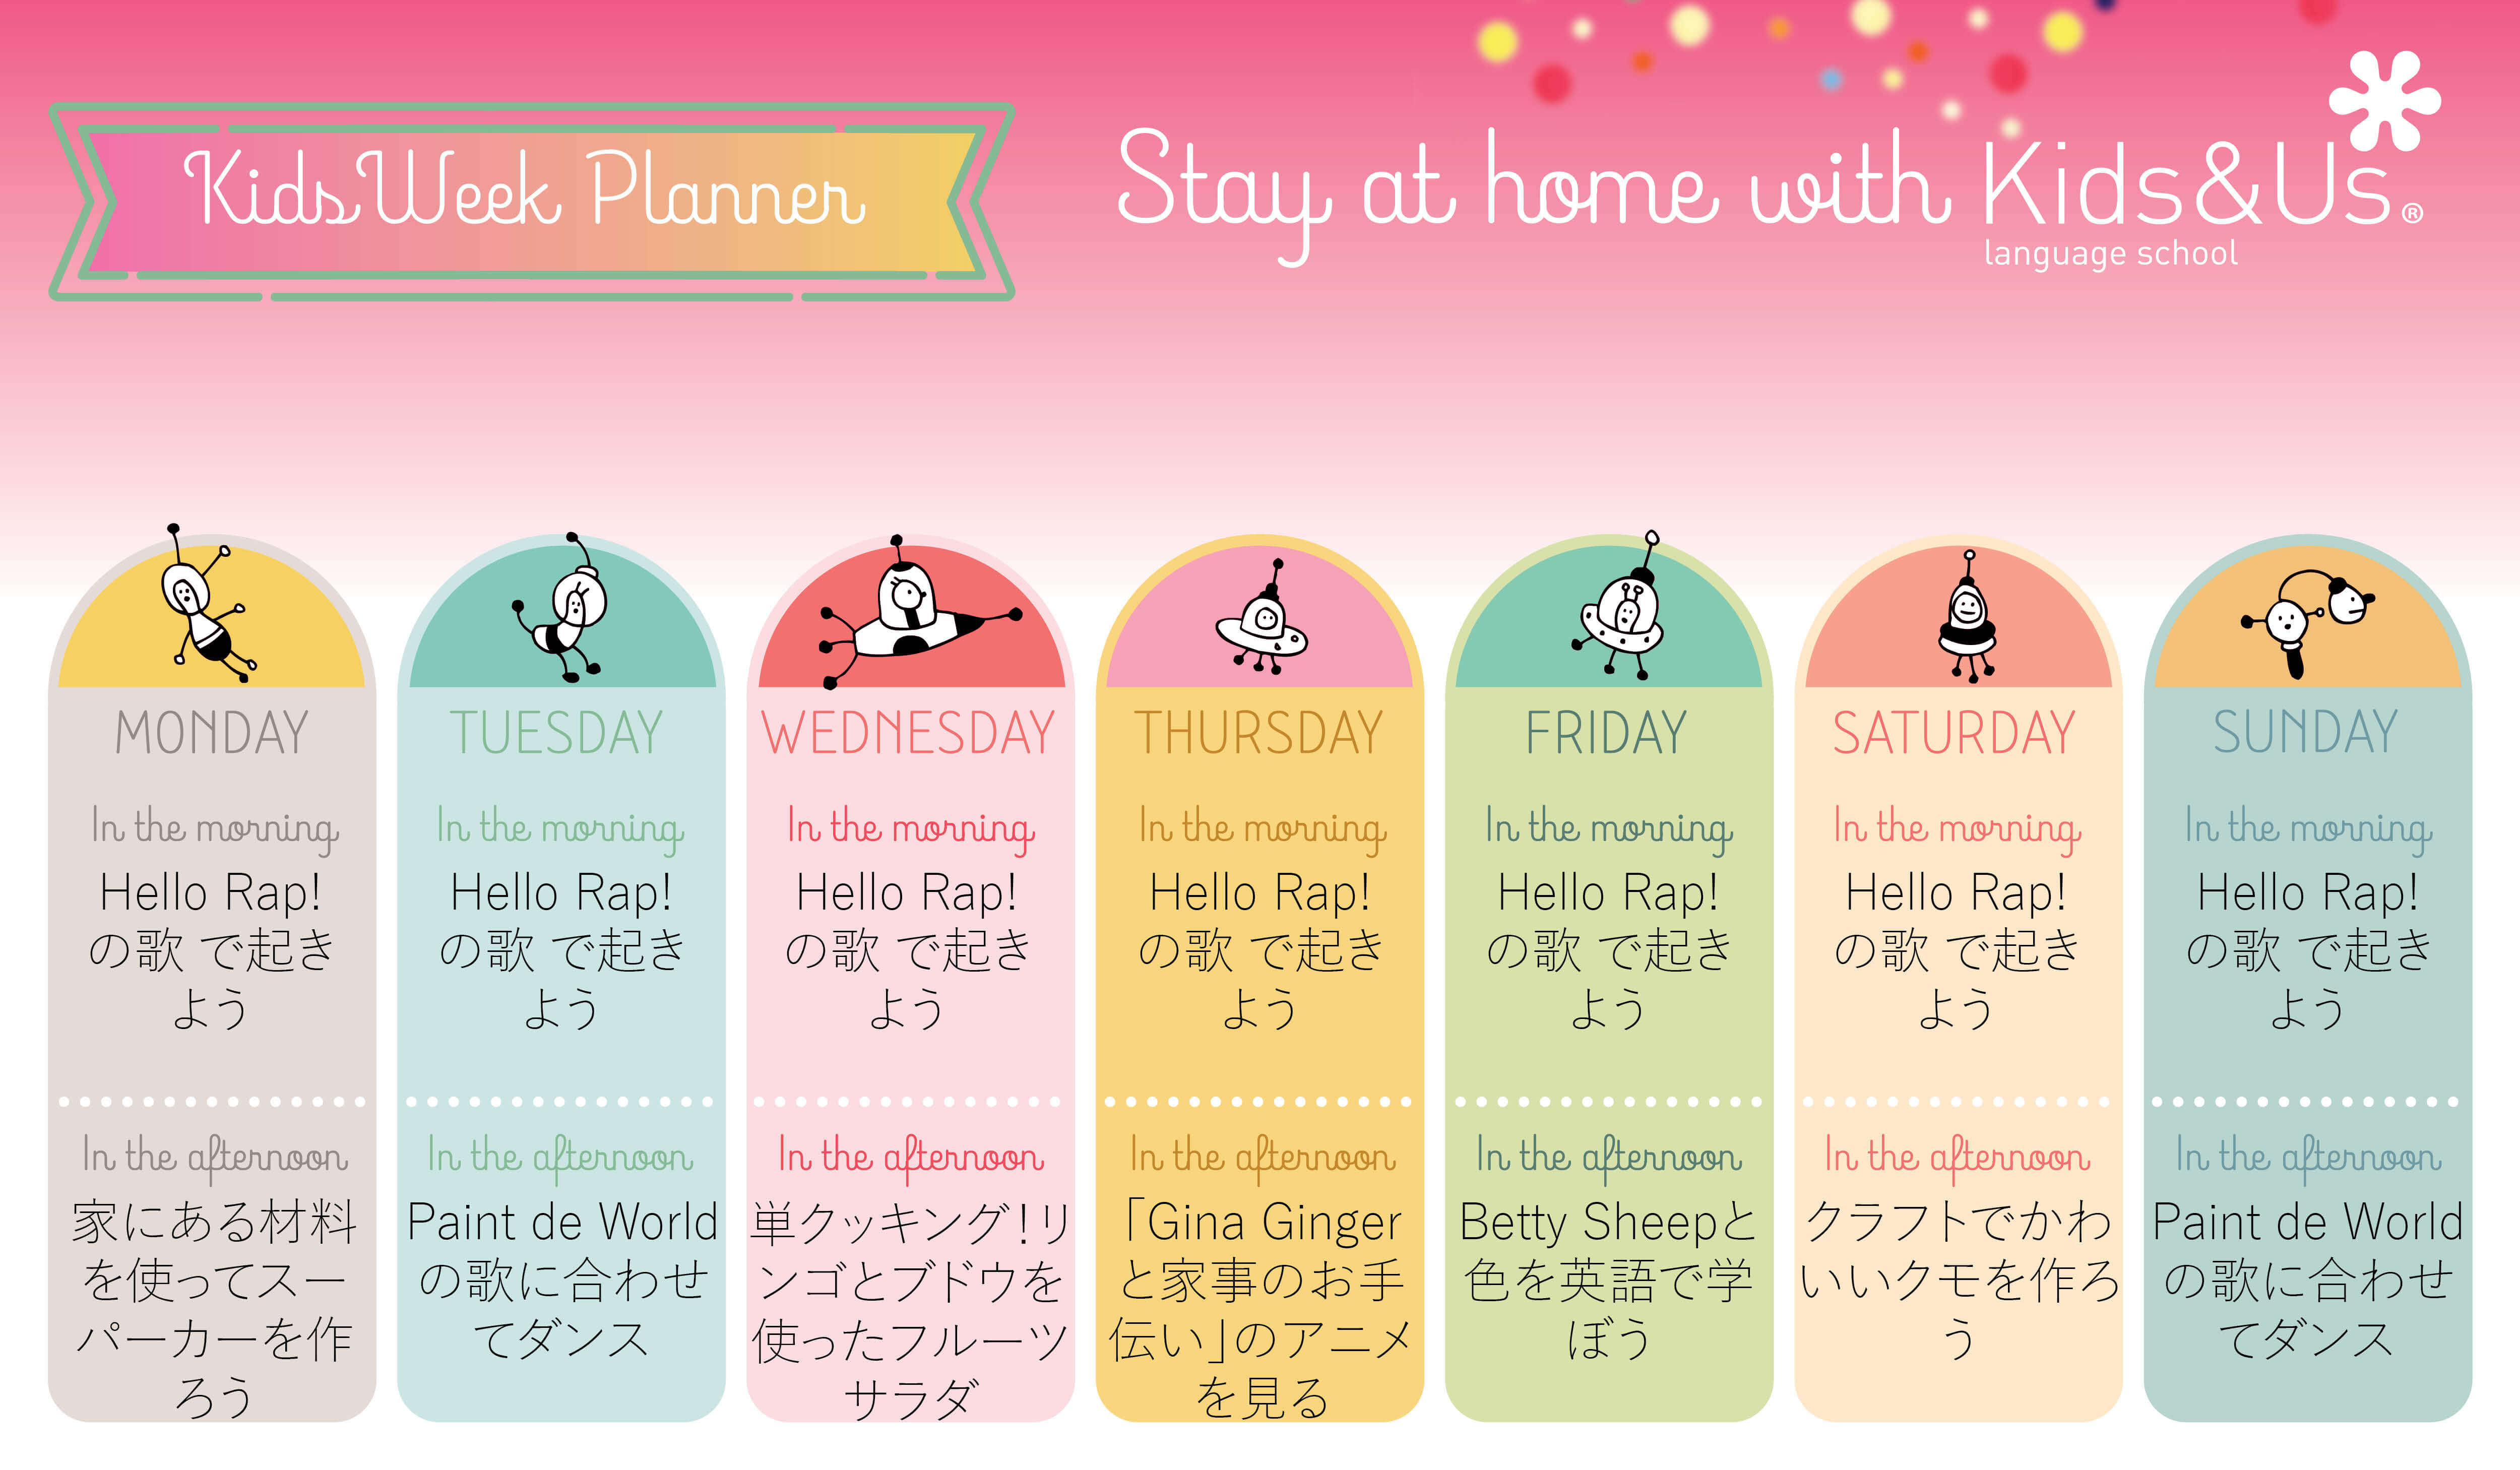 Planner for activities to do at home